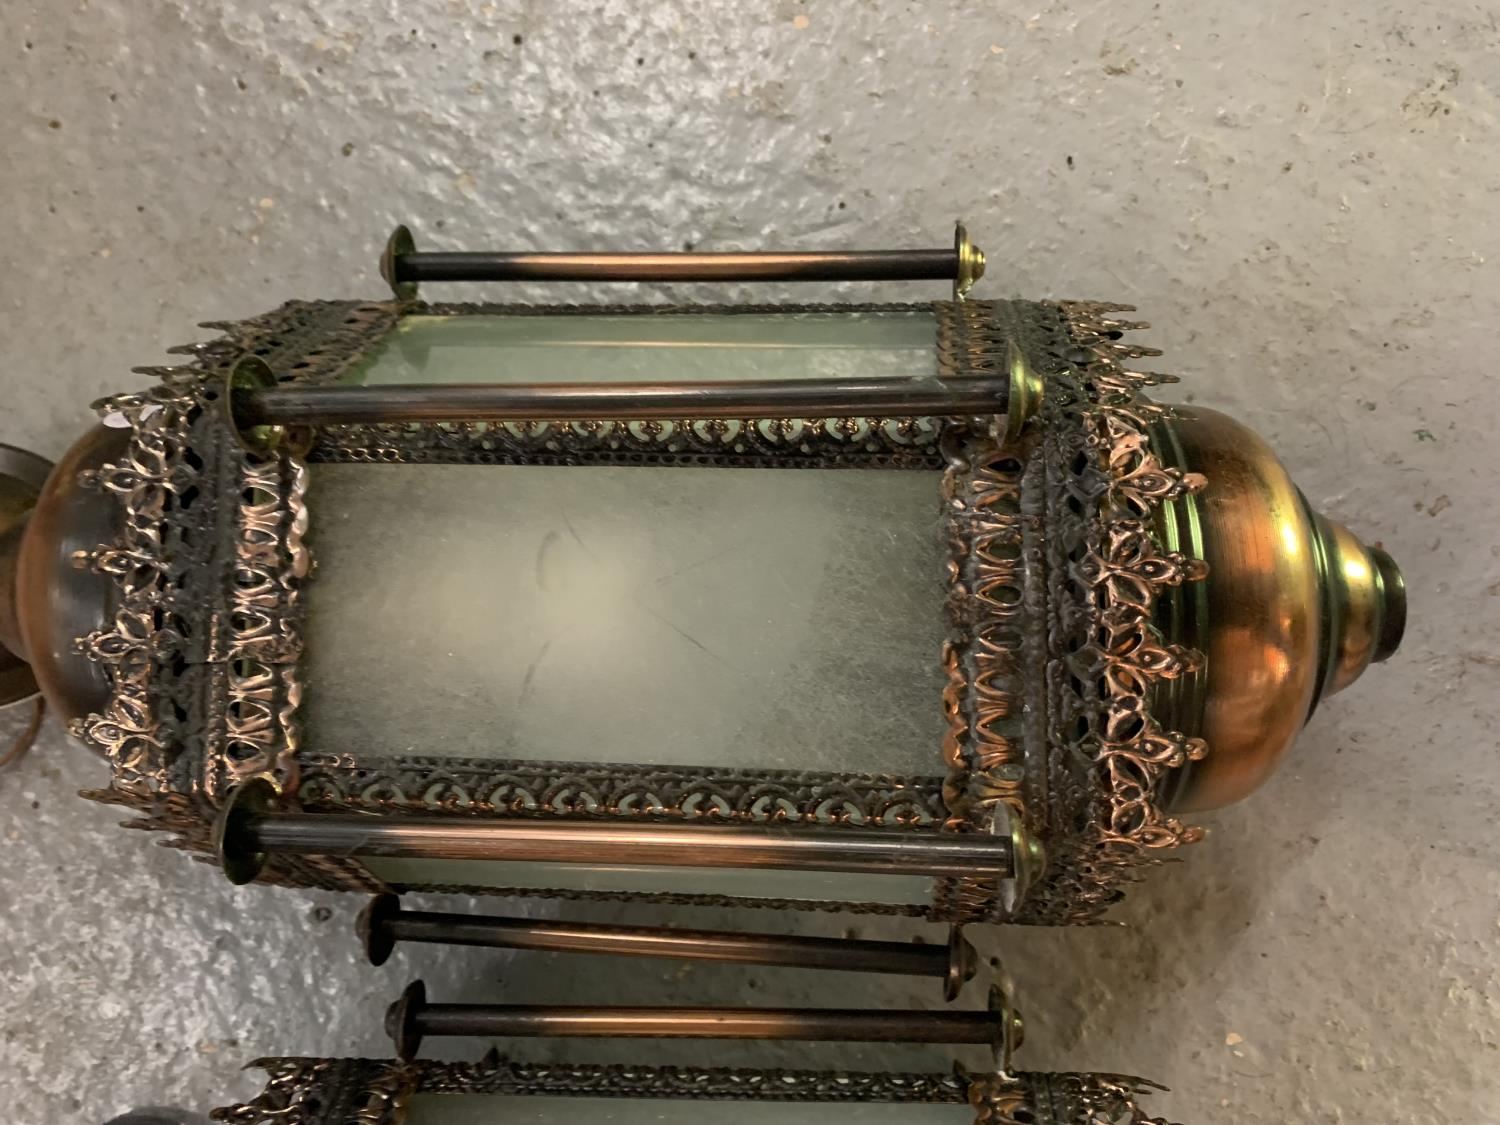 TWO MORROCAN STYLE LIGHTS WITH GLASS PANELS - Image 3 of 6